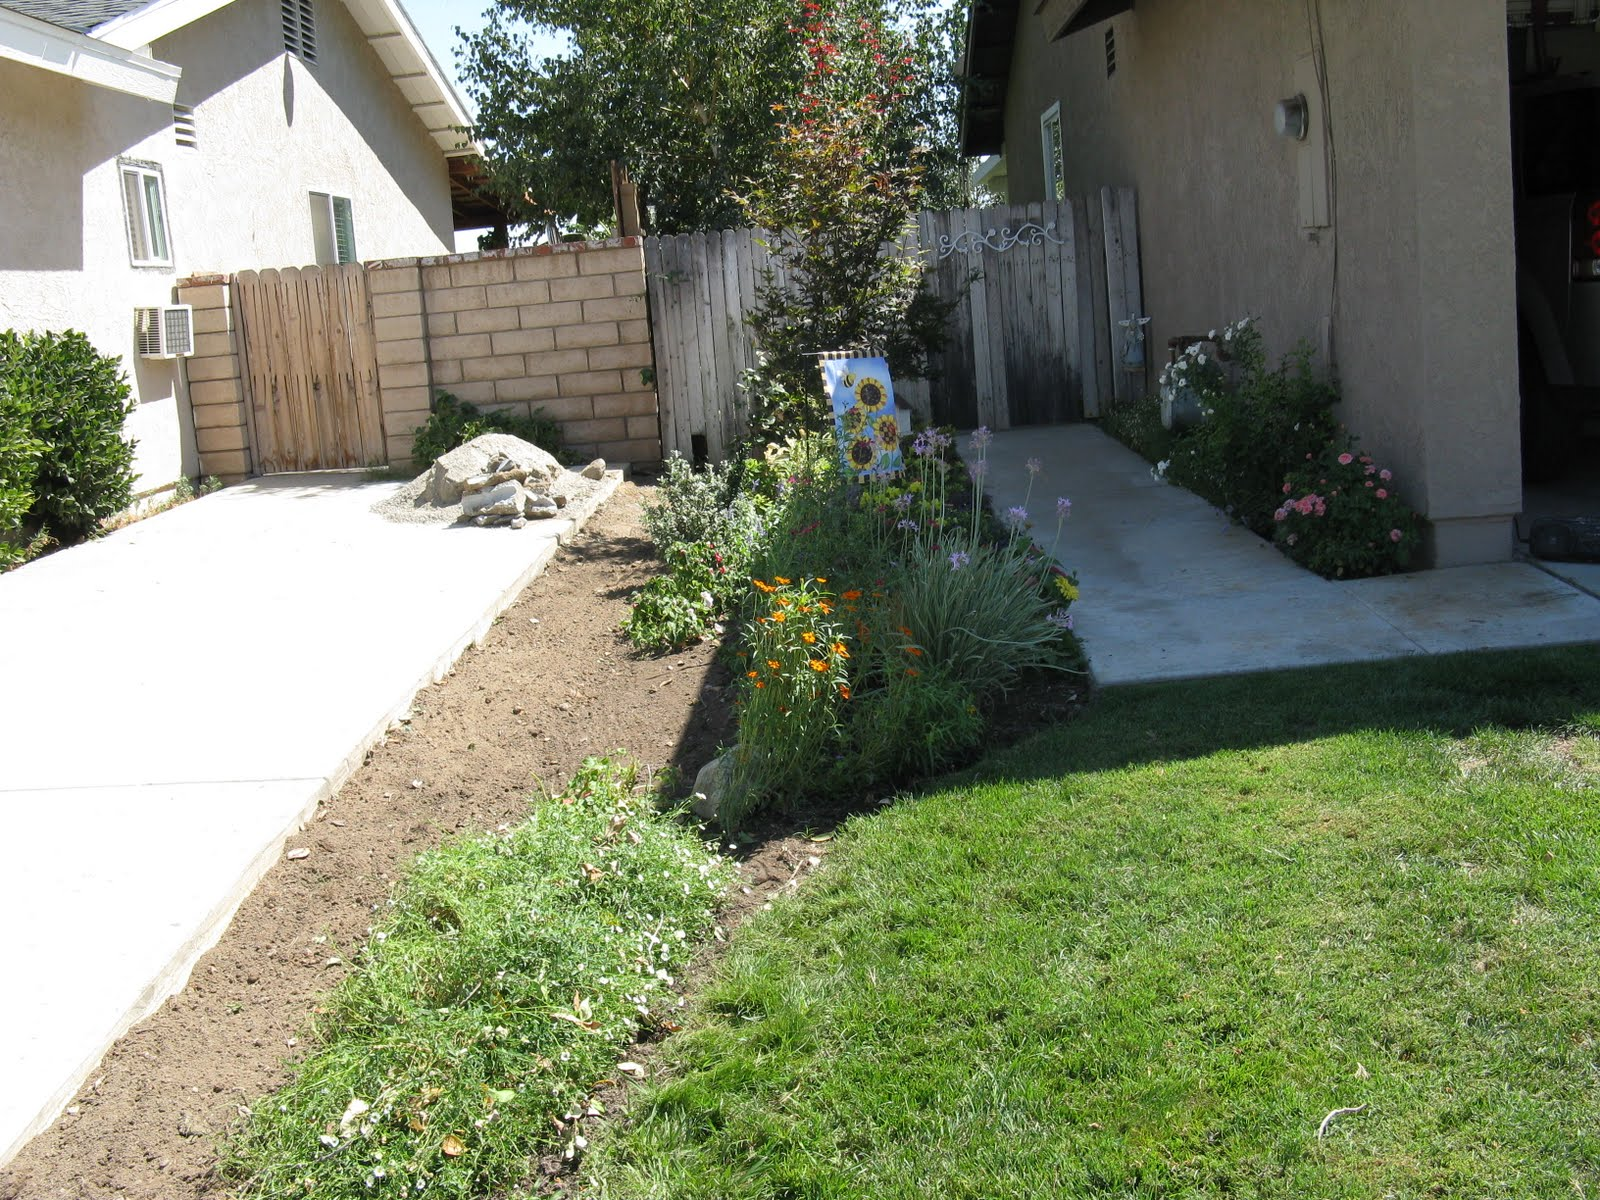 40+ Beautiful Front Yard Fence Ideas - Page 19 of 45